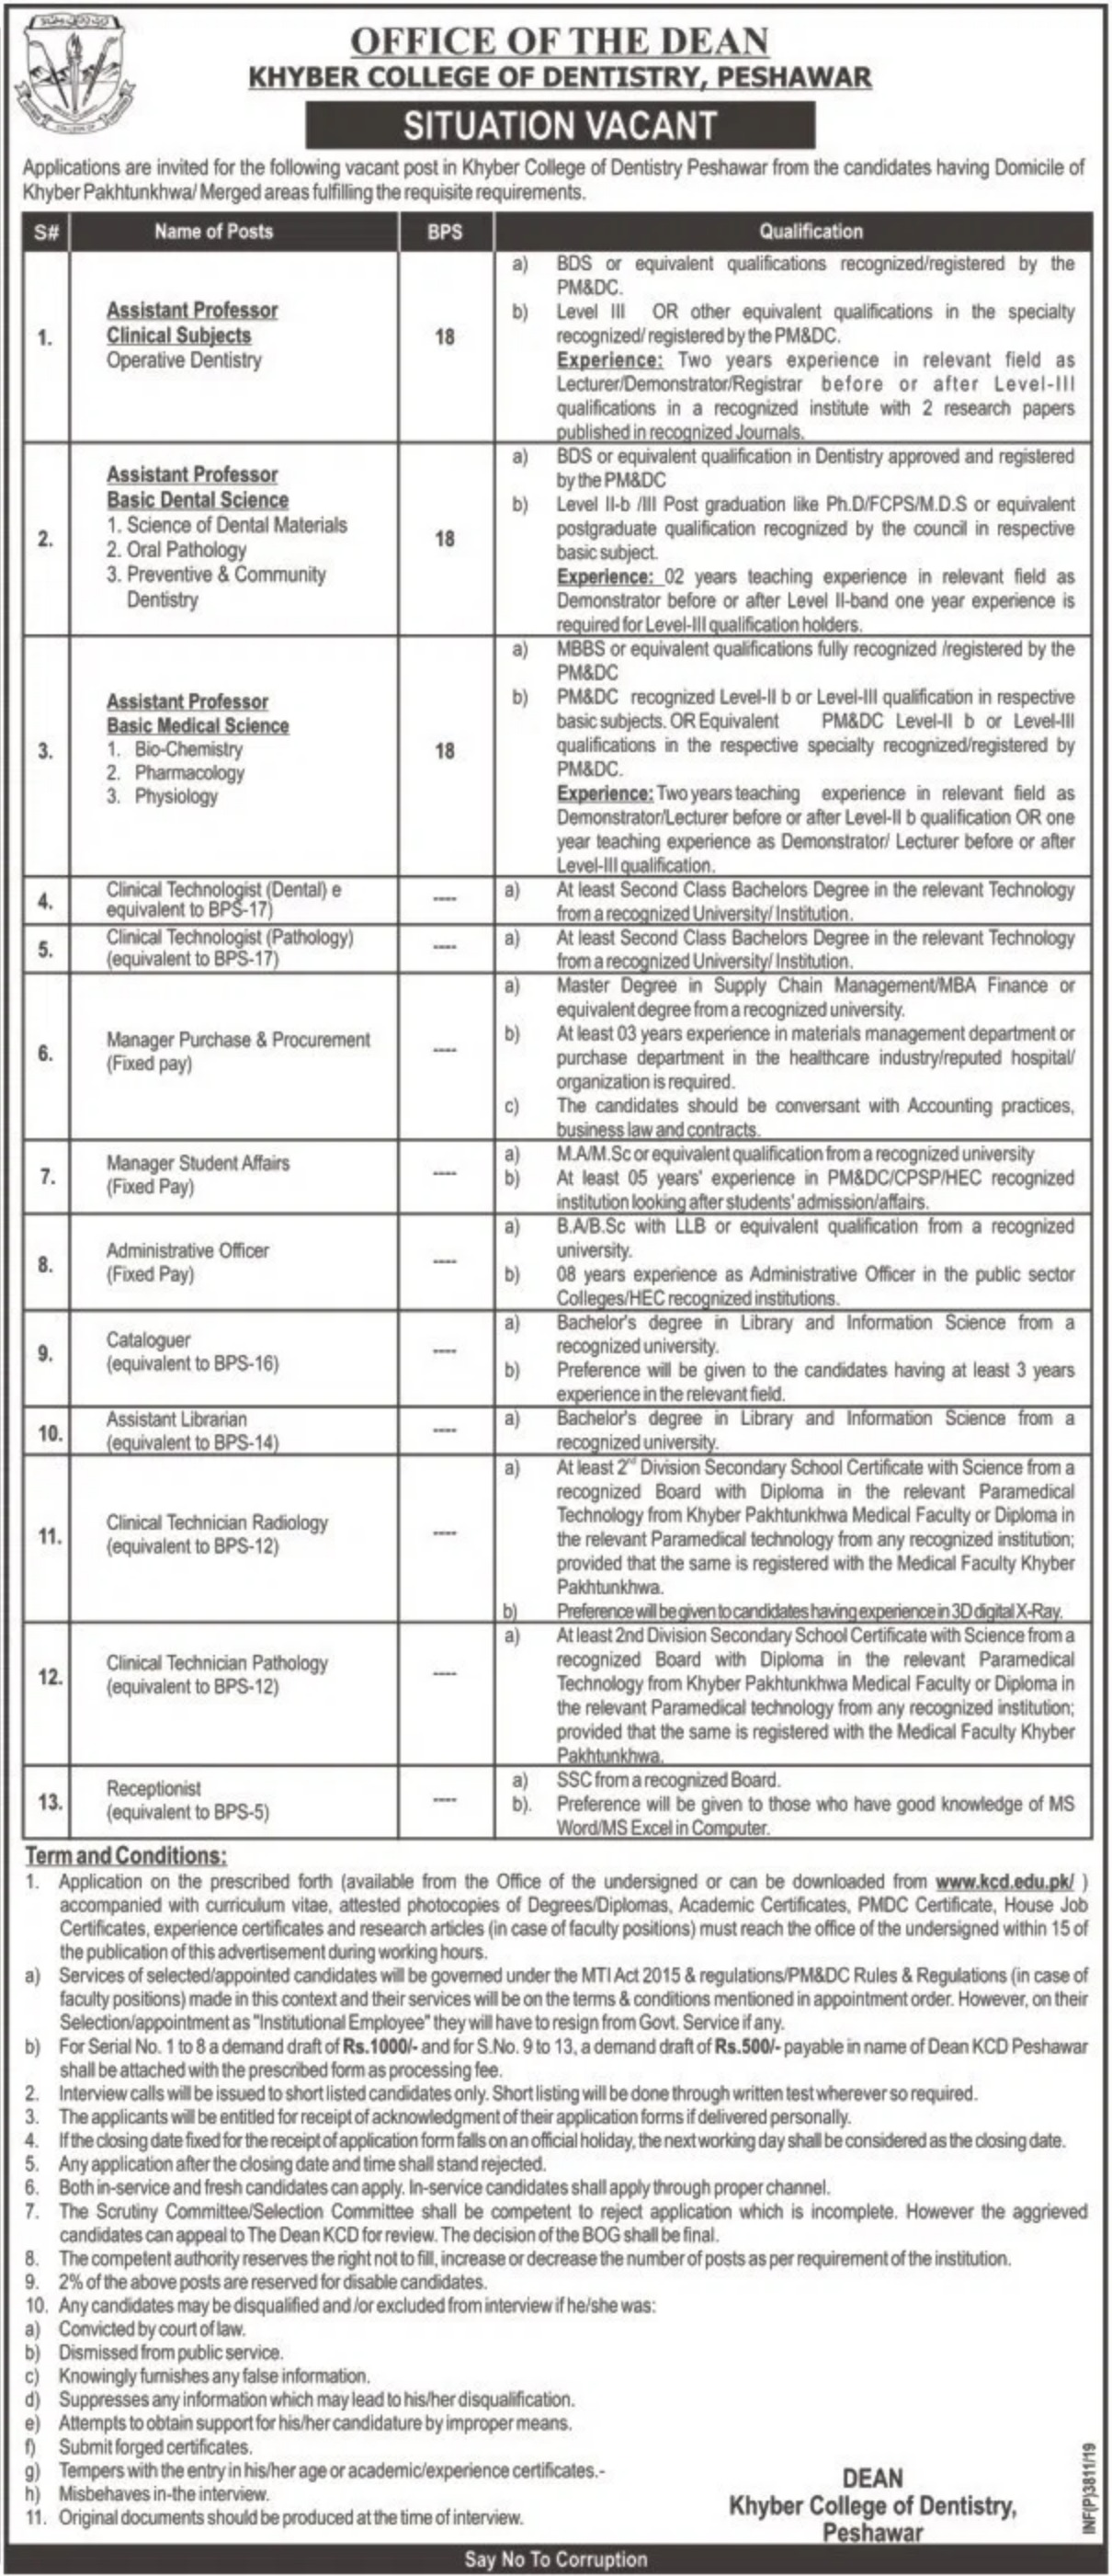 Khyber College of Dentistry KCD Peshawar Jobs 2019 Application Form